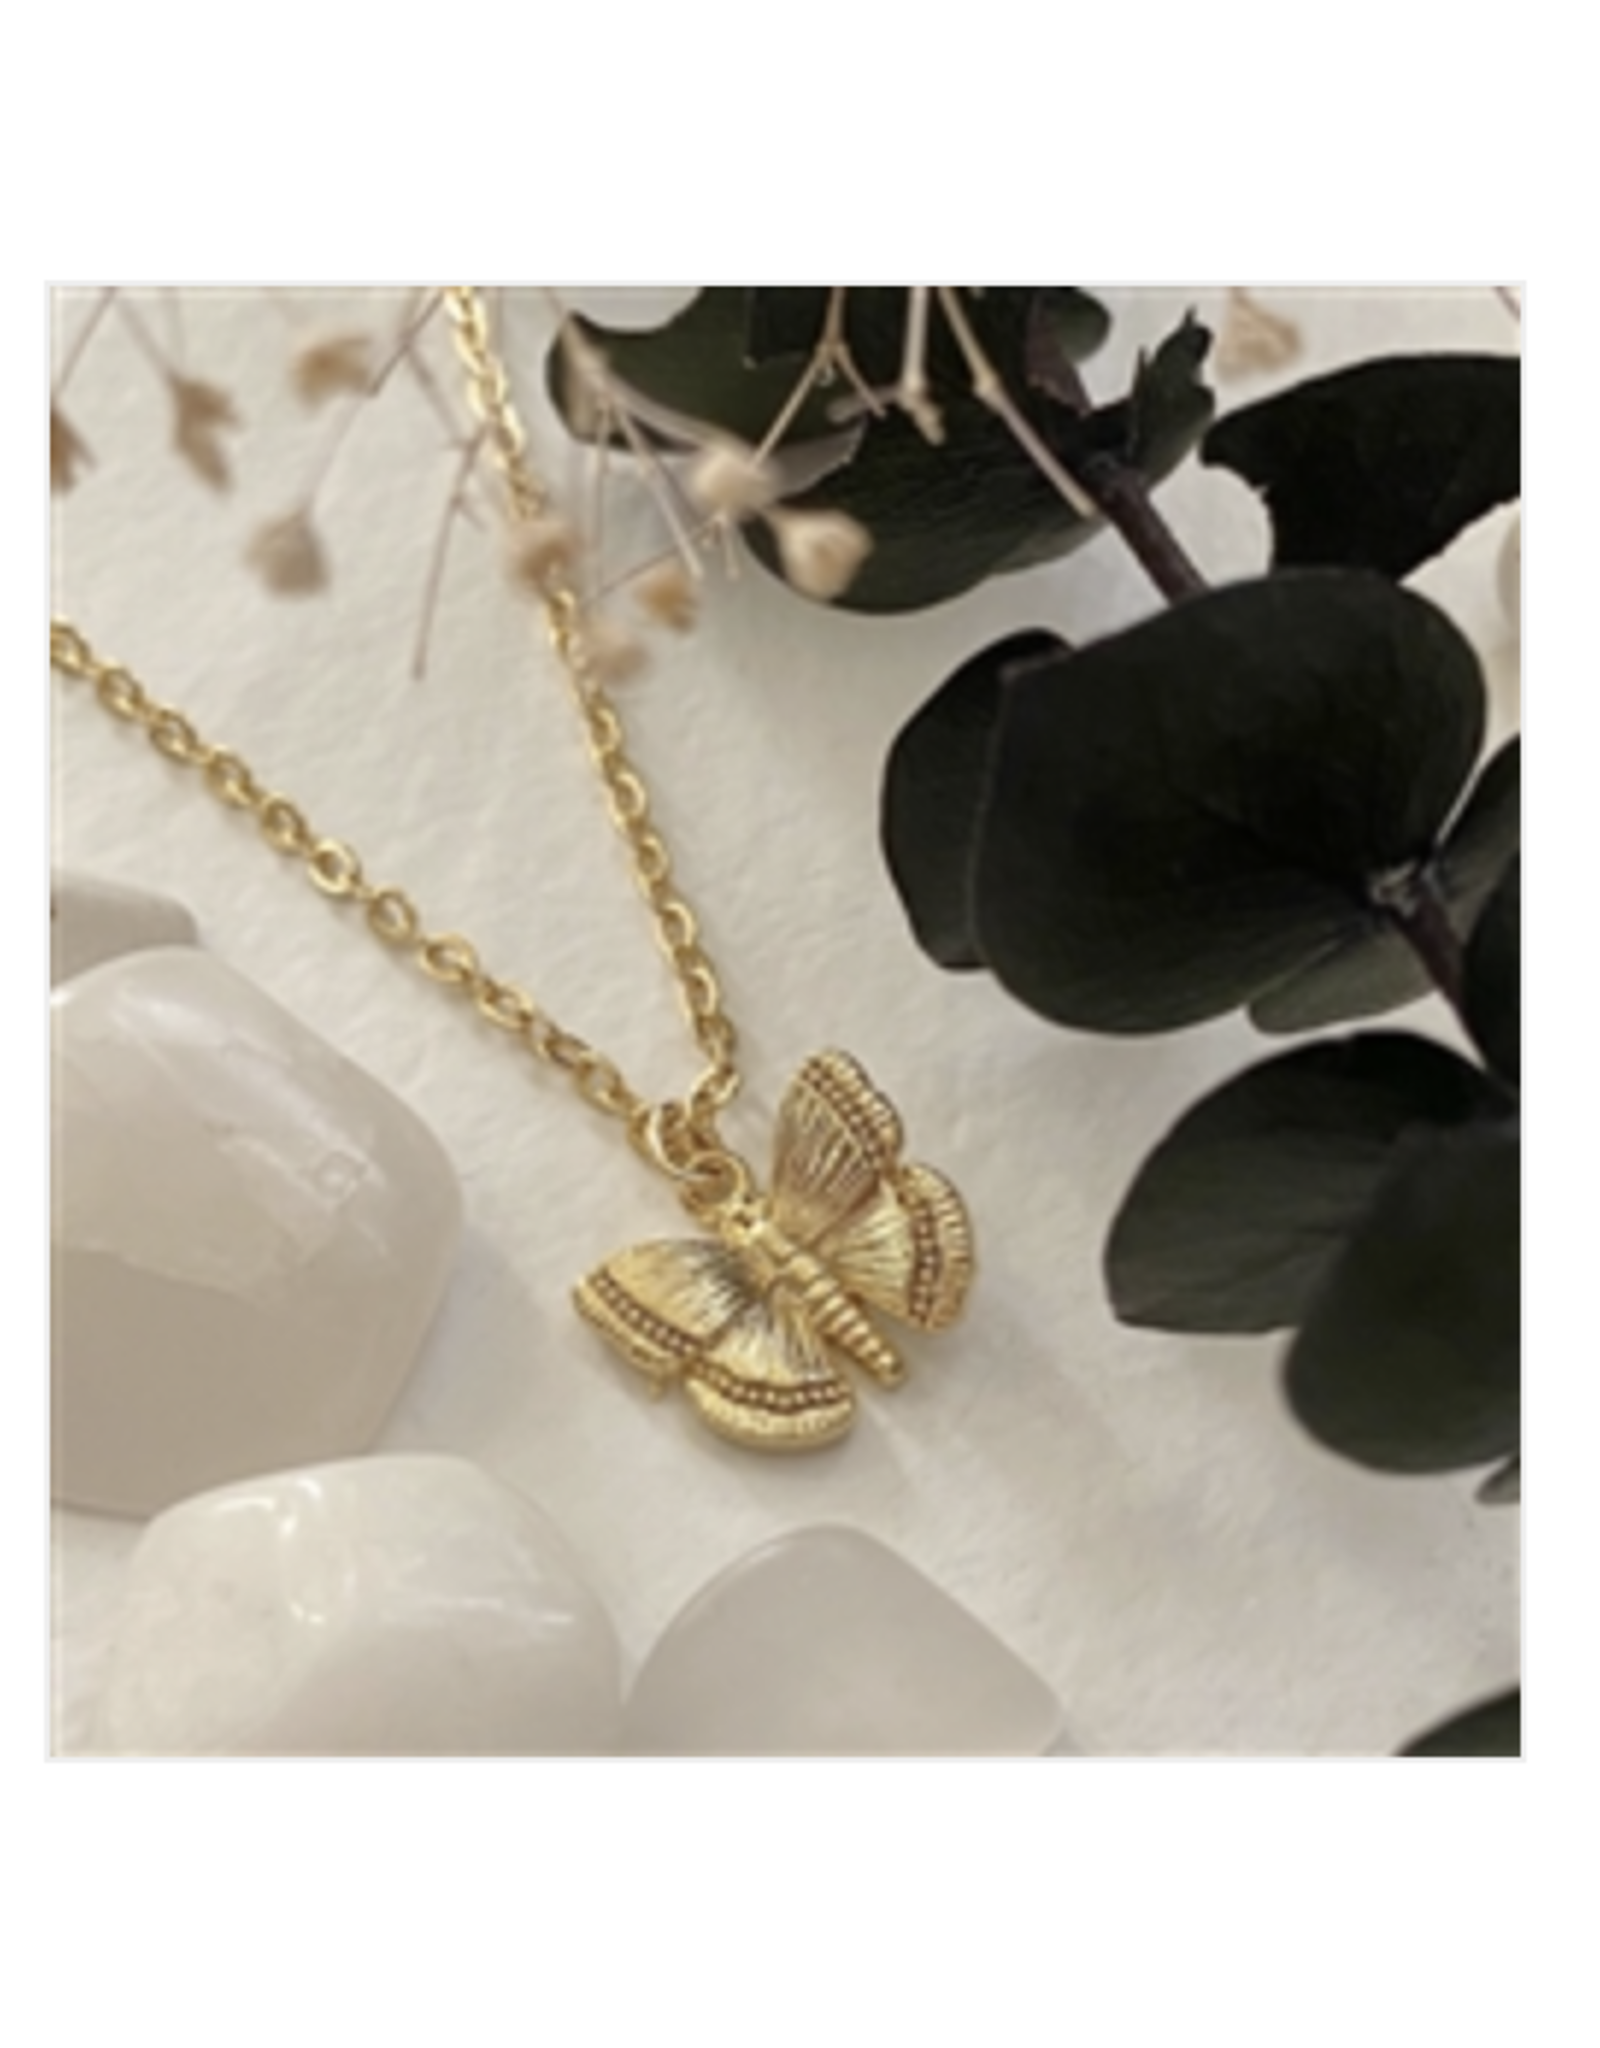 Papillon Butterfly Charm Necklace - Gold